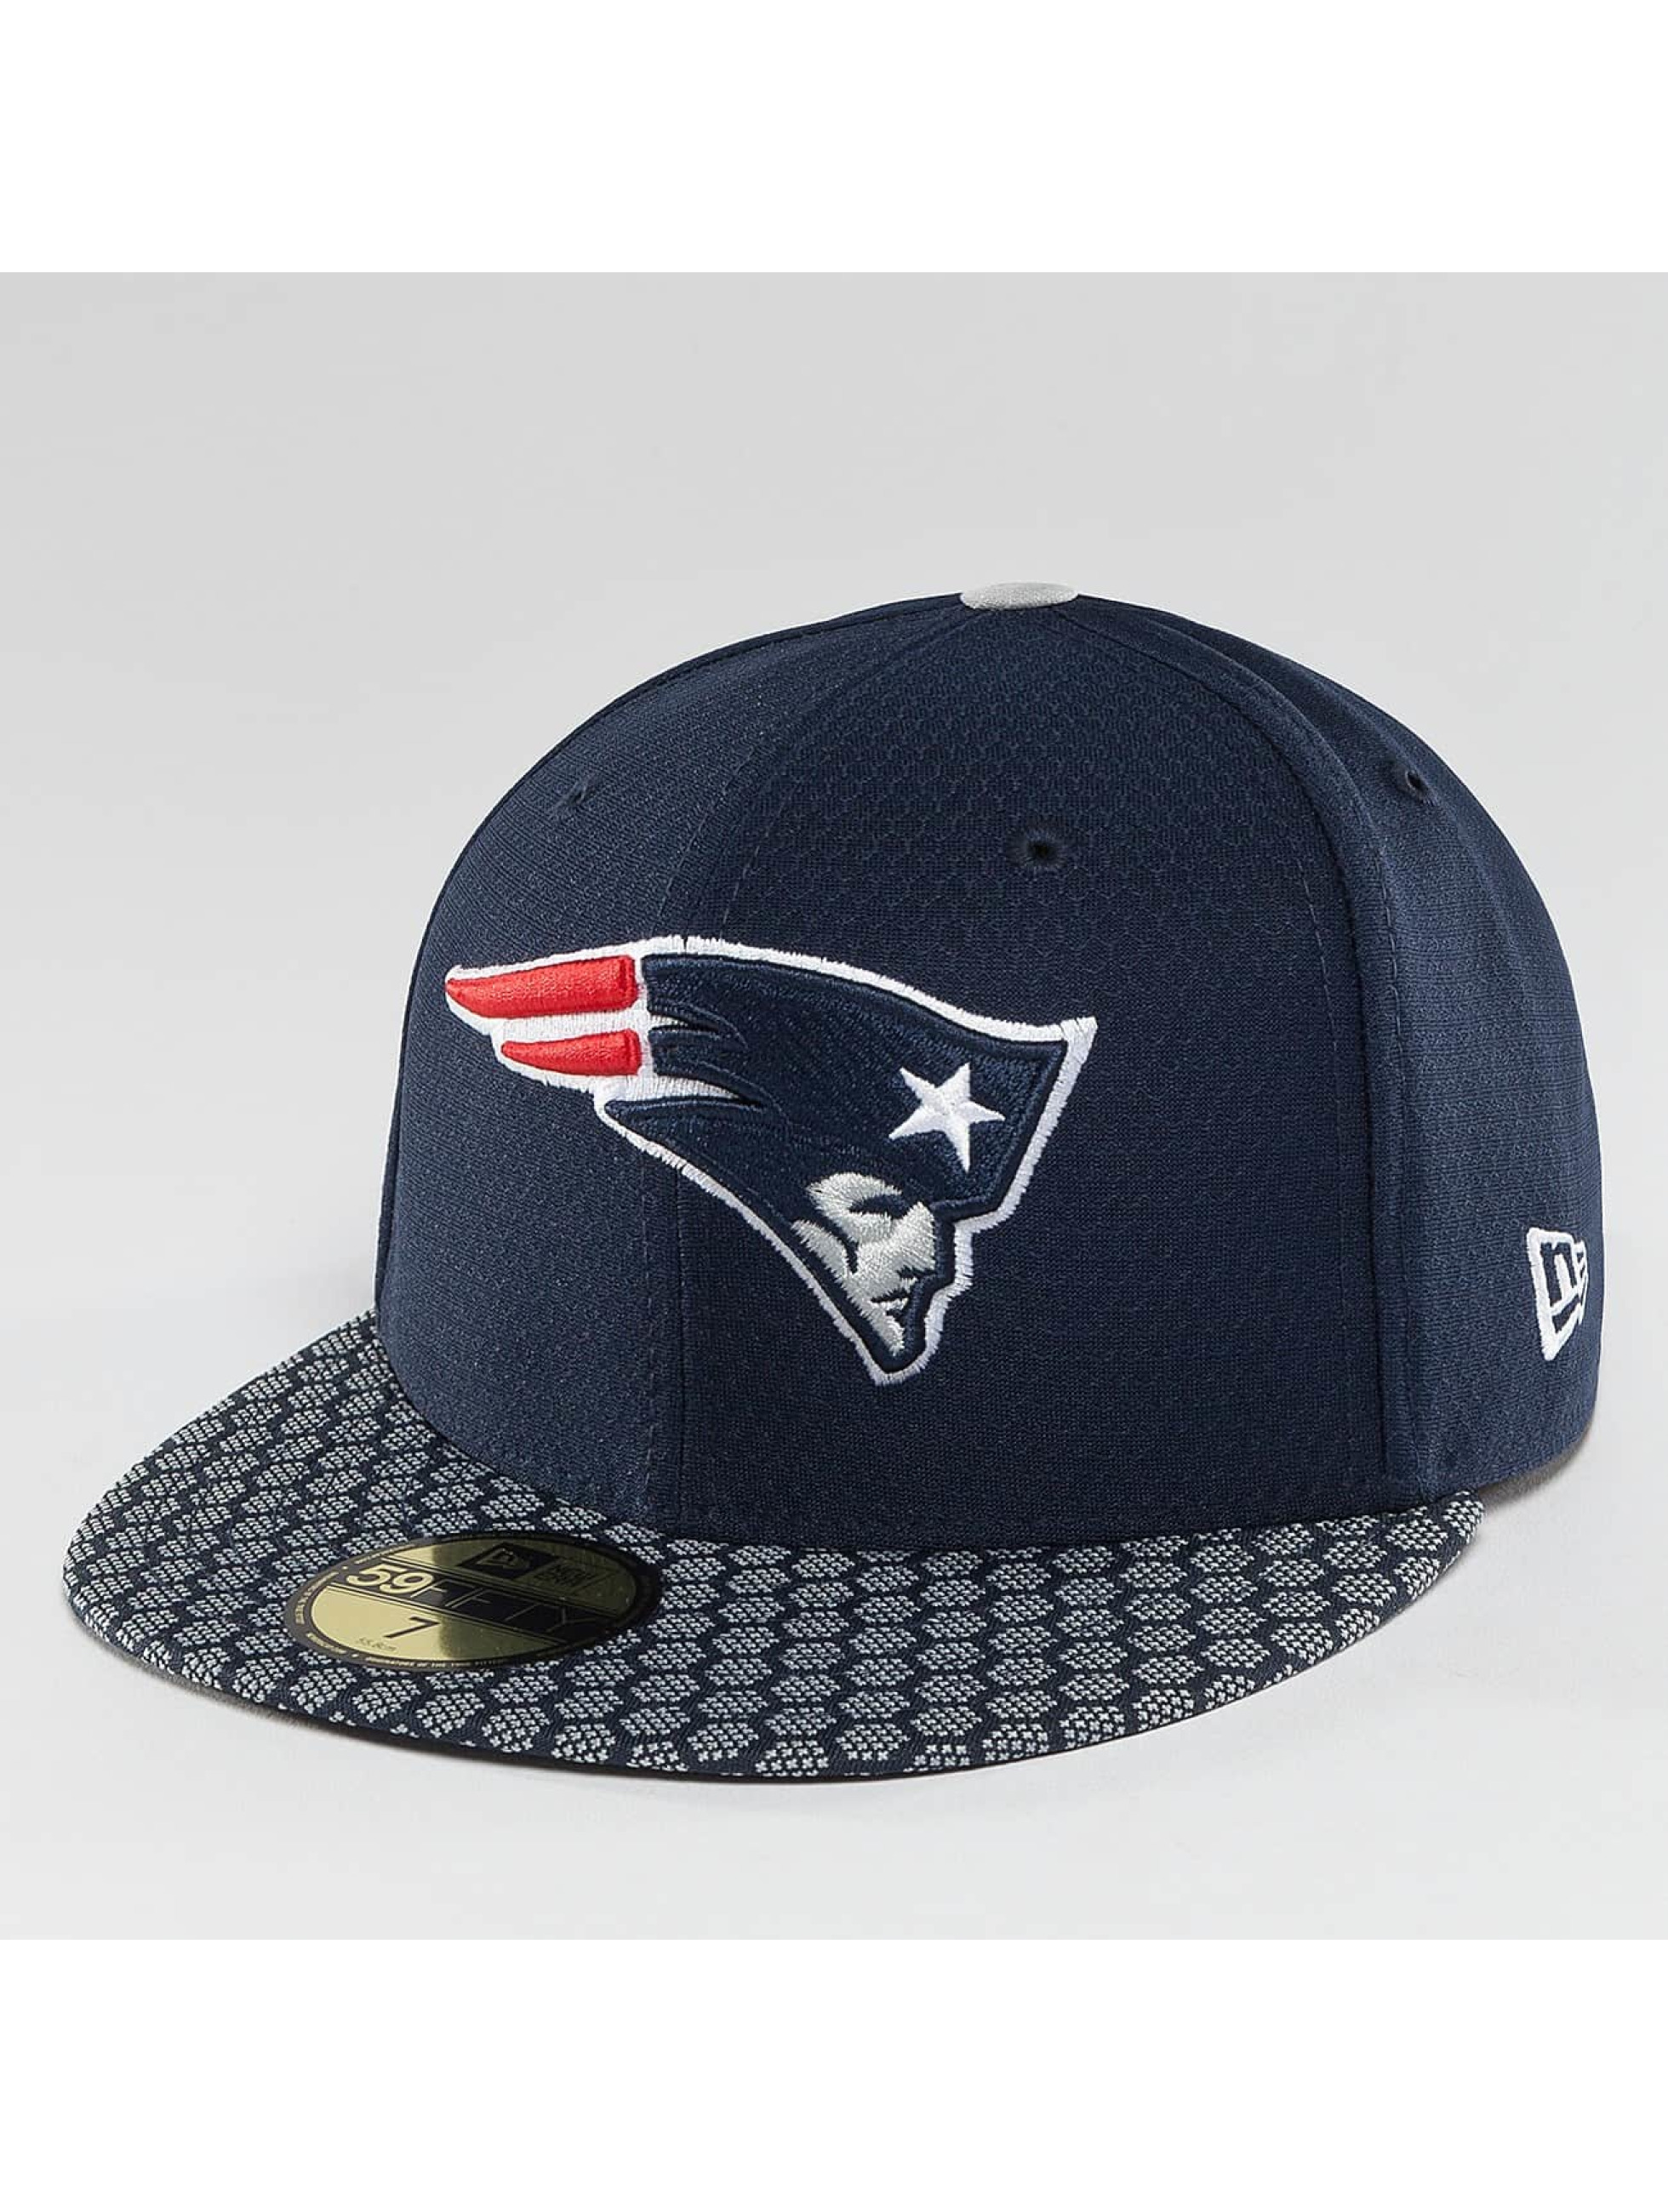 New Era Fitted Cap NFL On Field New Endland Patriots 59Fifty blue